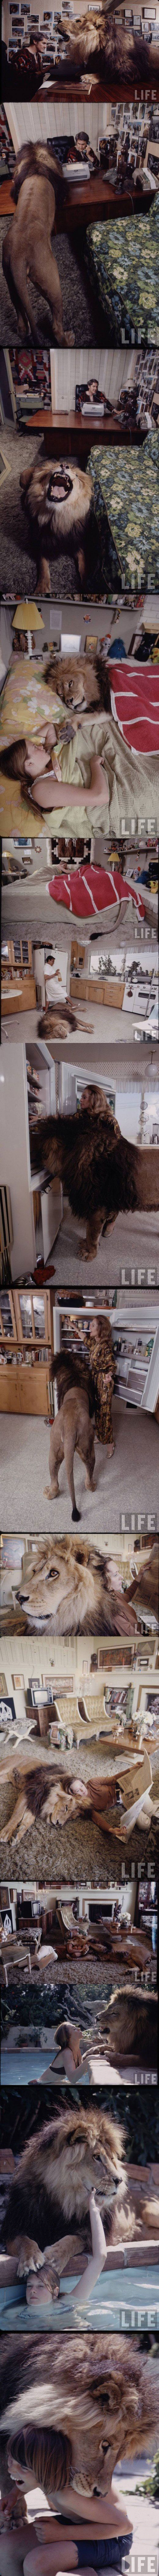 Lion Living With A Family...Amazing till it ends up freaking and biting u